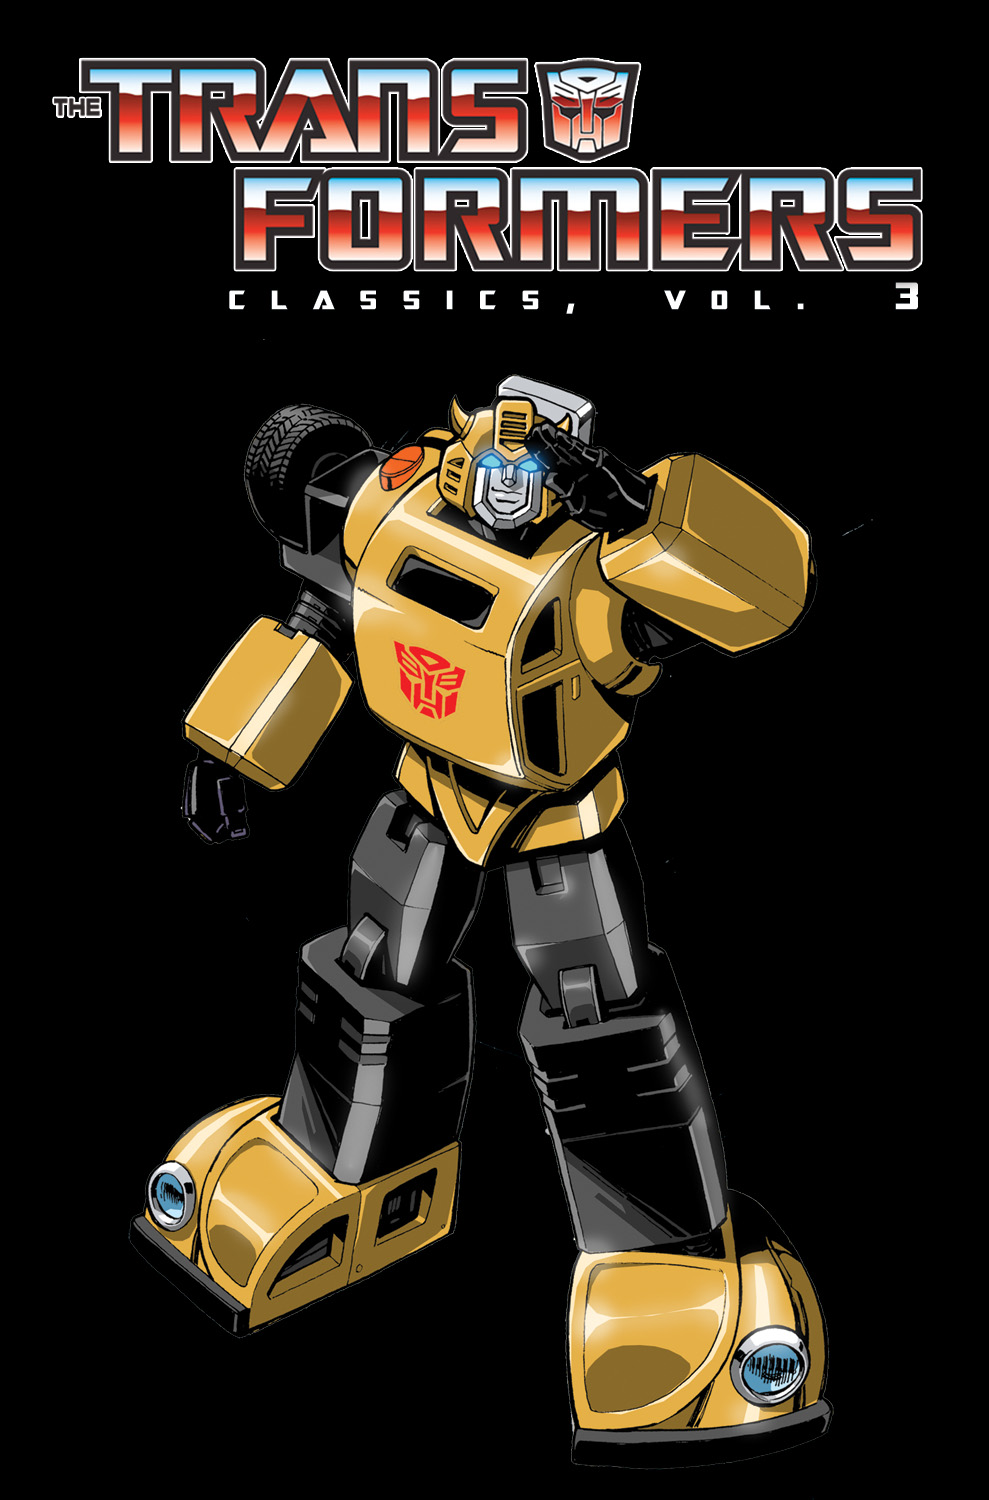 The Transformers Classics, Vol. 3 cover